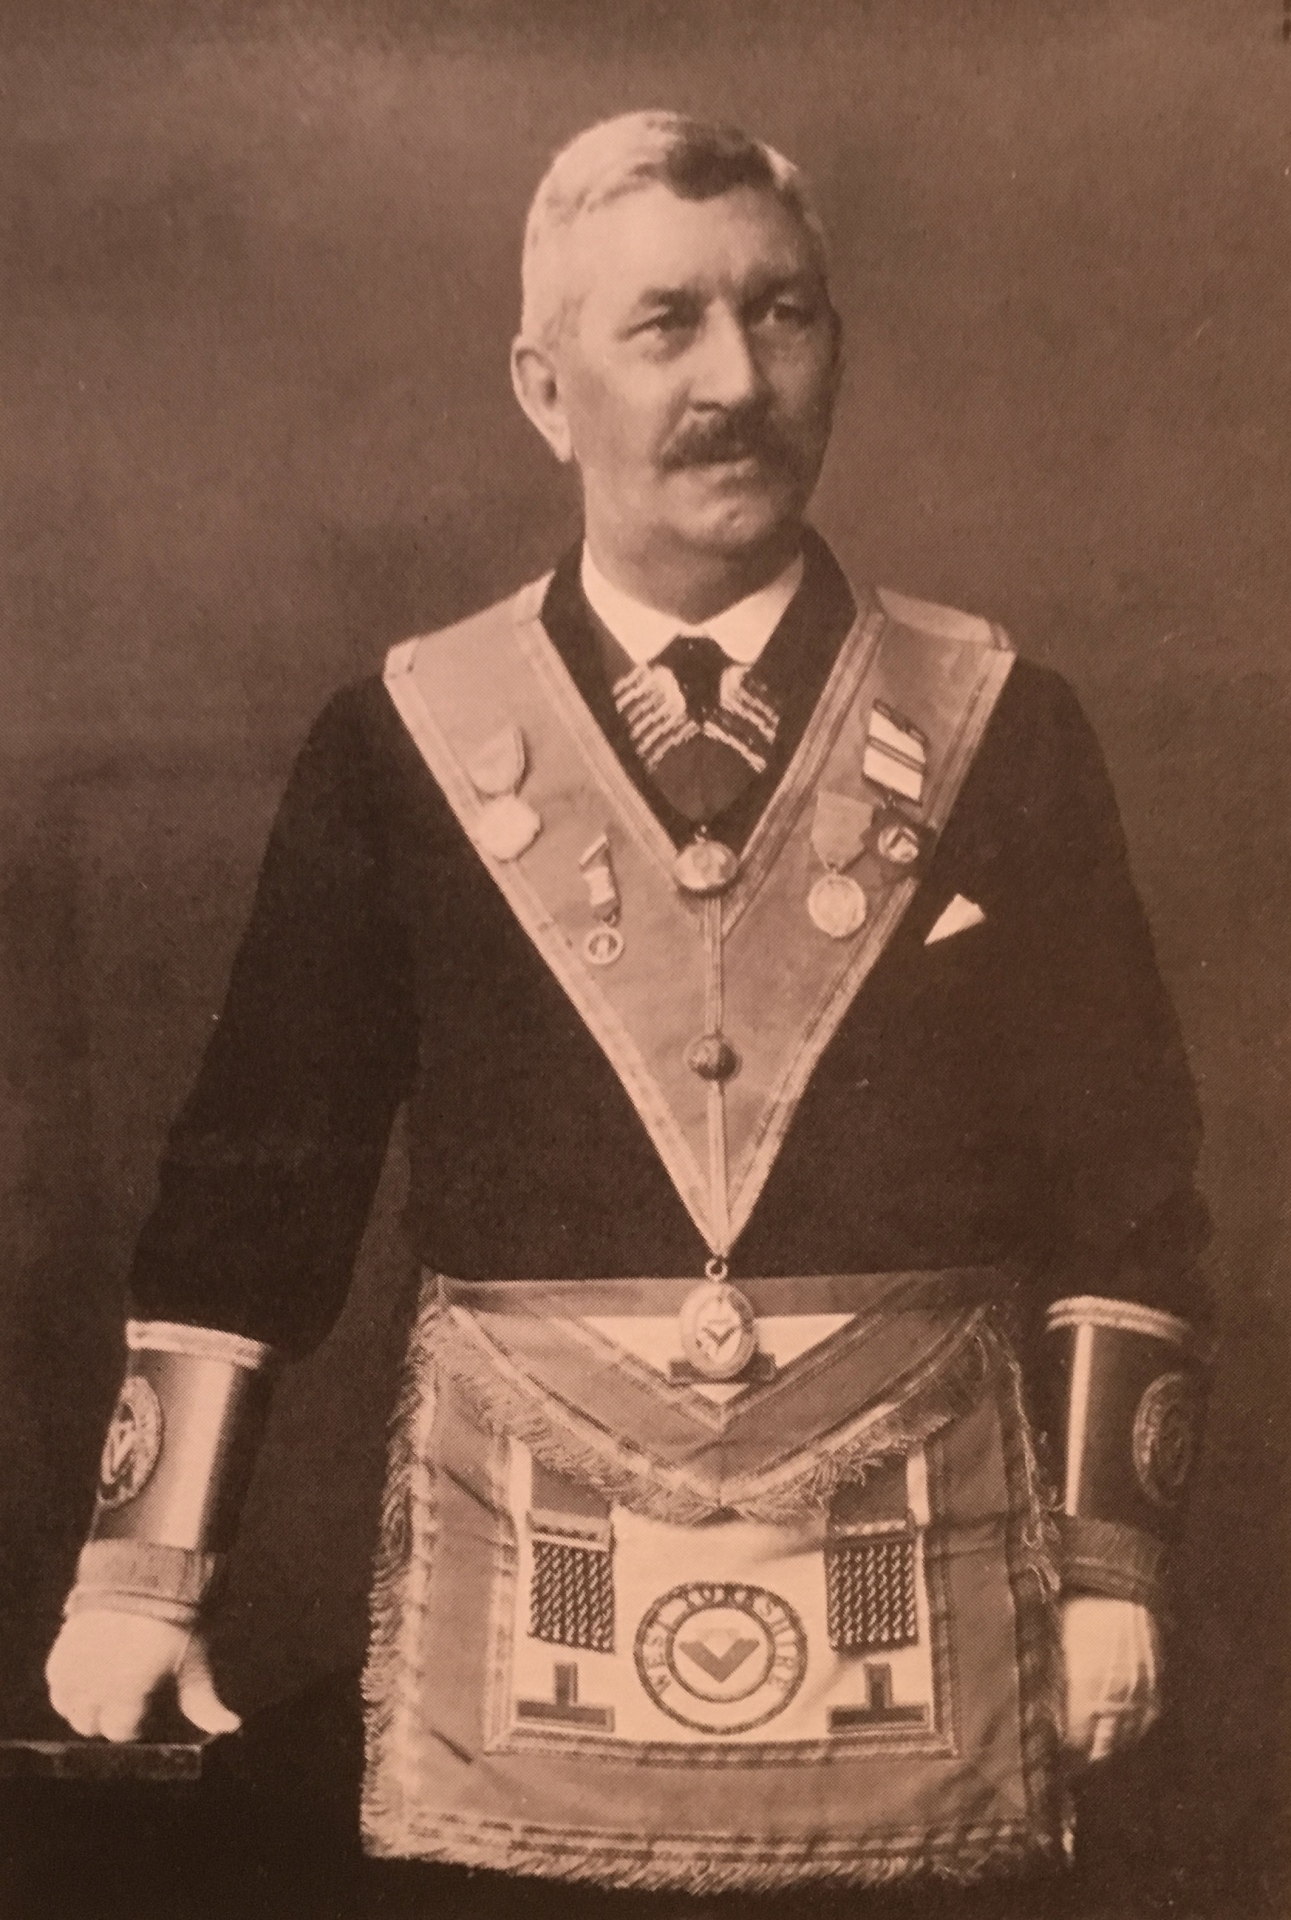 W.Bro. George Whittington, J.P., P.G.D., Assistant Provincial Grand Master